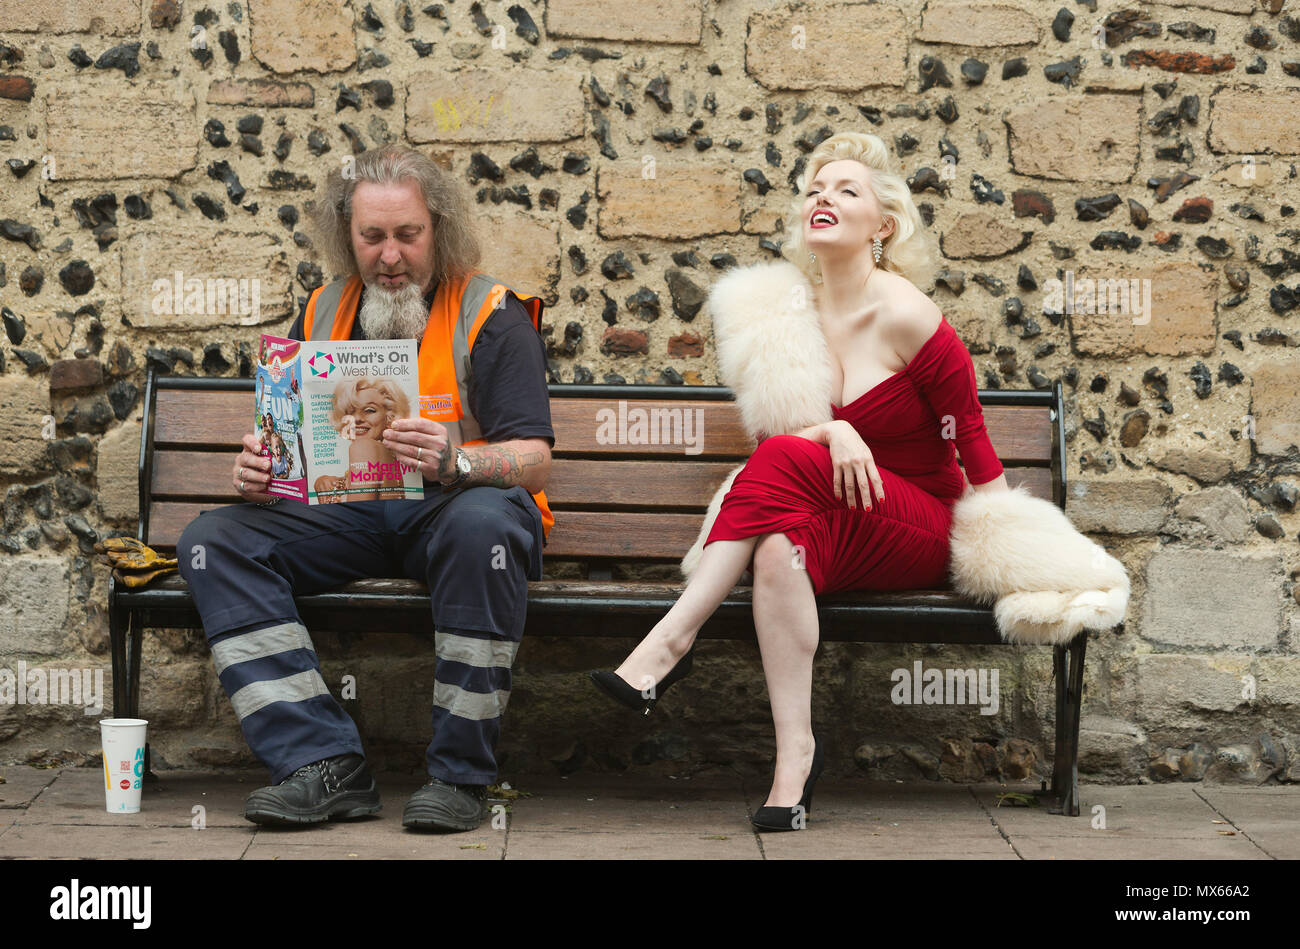 Bury St Edmunds, UK. 2nd Jun, 2018. Graham Silcock reads about the latest exhibition unaware he is seated beside the world's leading Marilyn Monroe tribute artist, Suzie Kennedy before she opened the 'Timeless' exhibition at Moyses Hall, Bury St Edmunds, which includes stunning images from Marilyn Monroe's very earliest days as a model, behind-the-scenes captures from her film-work, breathtaking location and studio work and emotive candid images that showcase her true personality in a unique and engaging way. Credit: Keith mindham/Alamy Live News - Stock Image